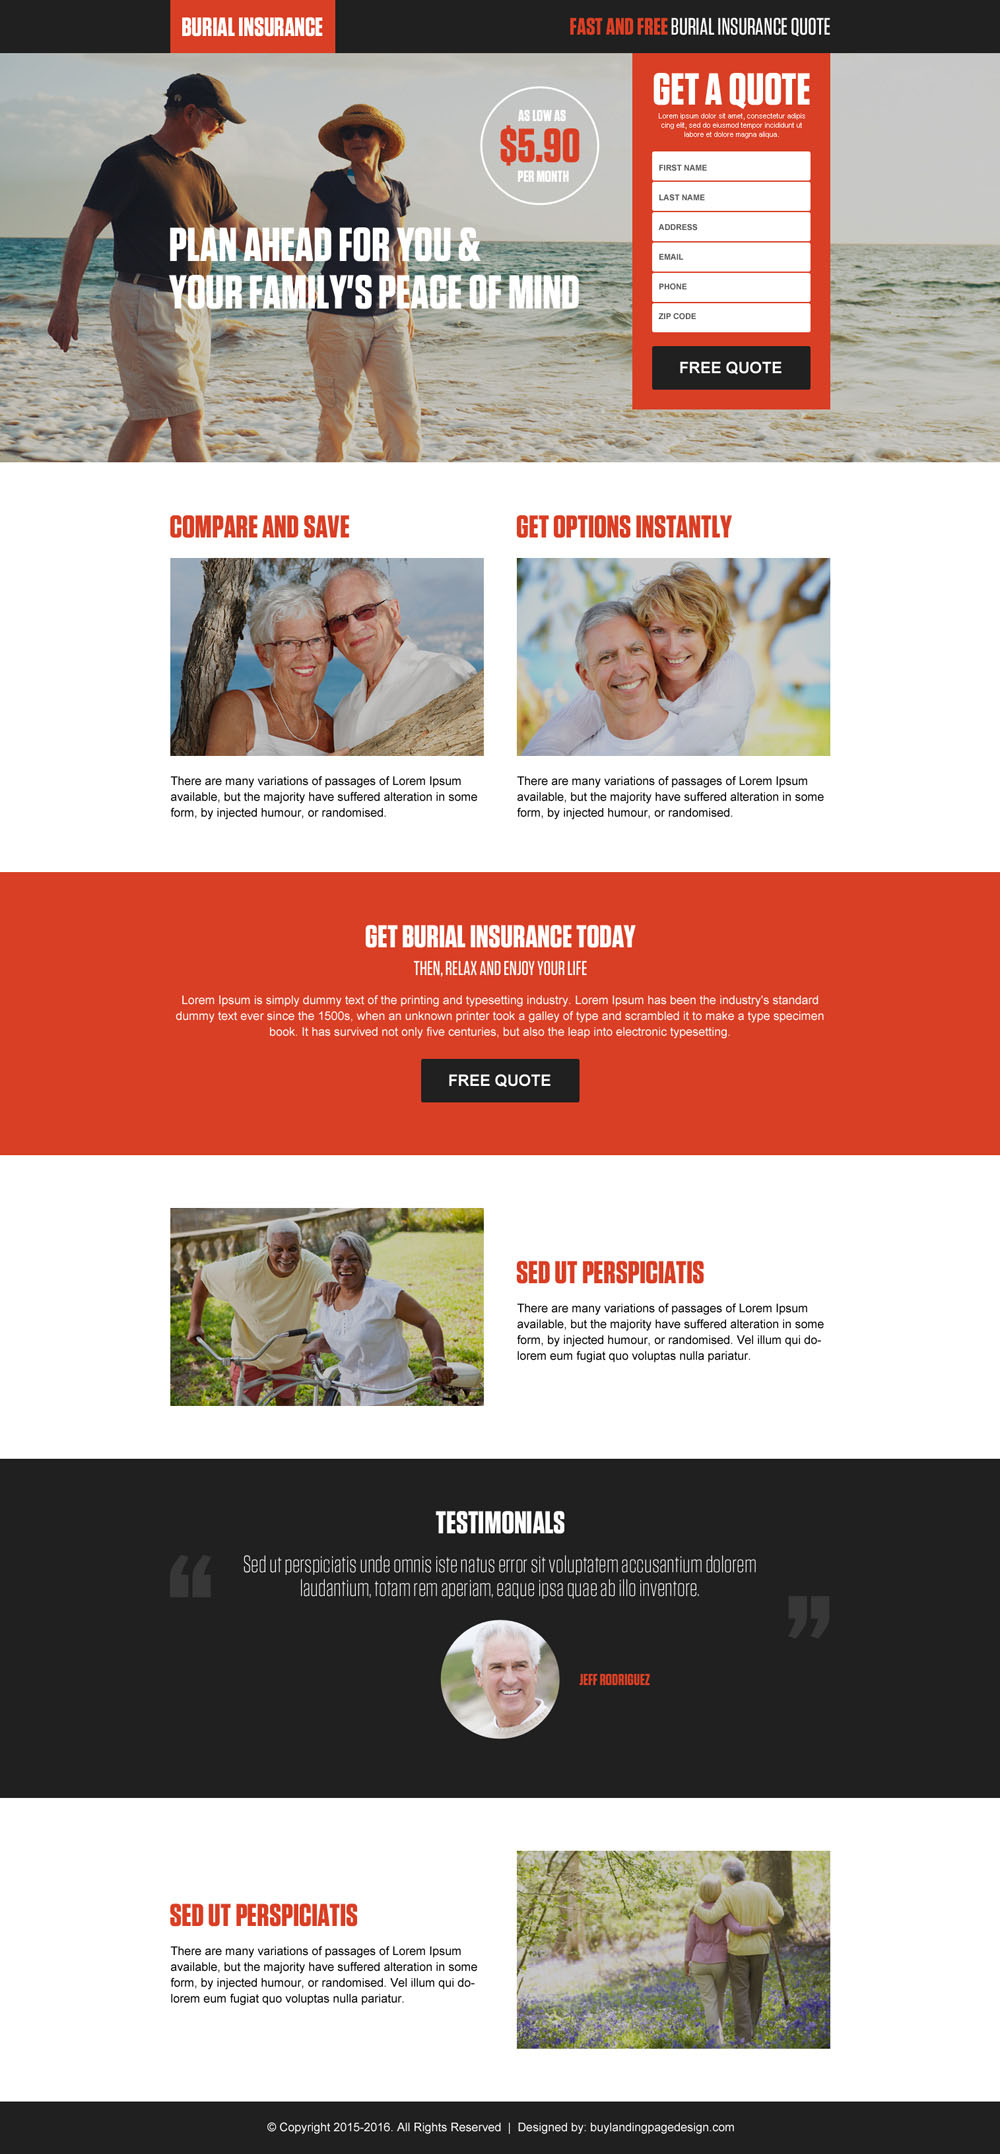 get-free-burial-insurance-quote-service-responsive-landing-page-design-001